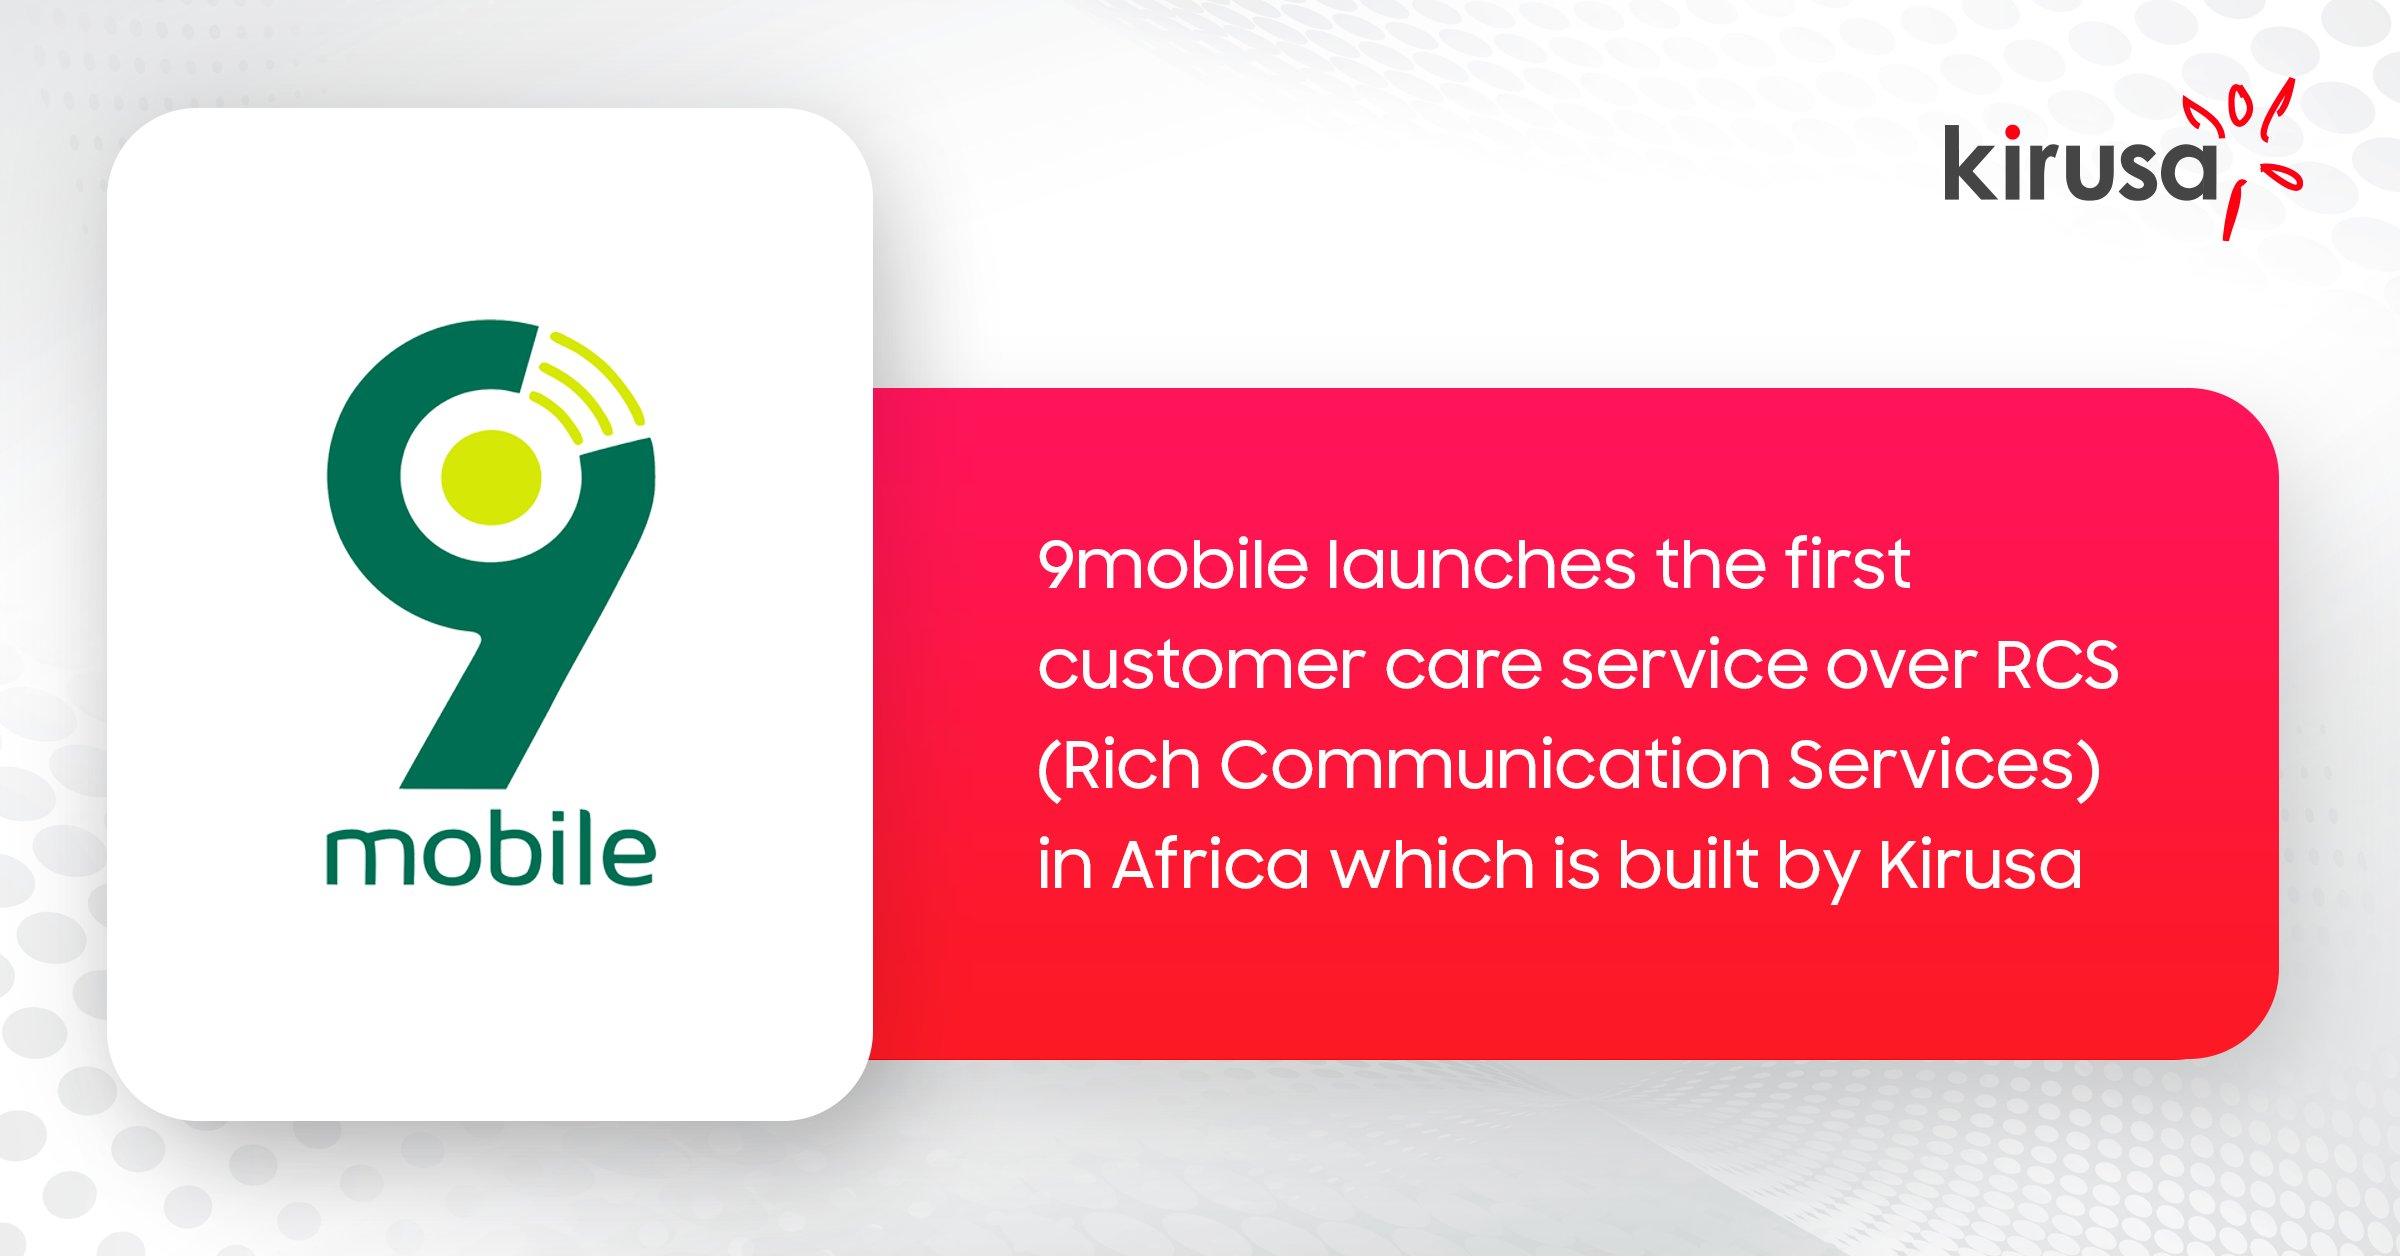 9MOBILE LAUNCHES CUSTOMER CARE ON RCS, TRANSFORMING HOW USERS COMMUNICATE WITH 9MOBILE